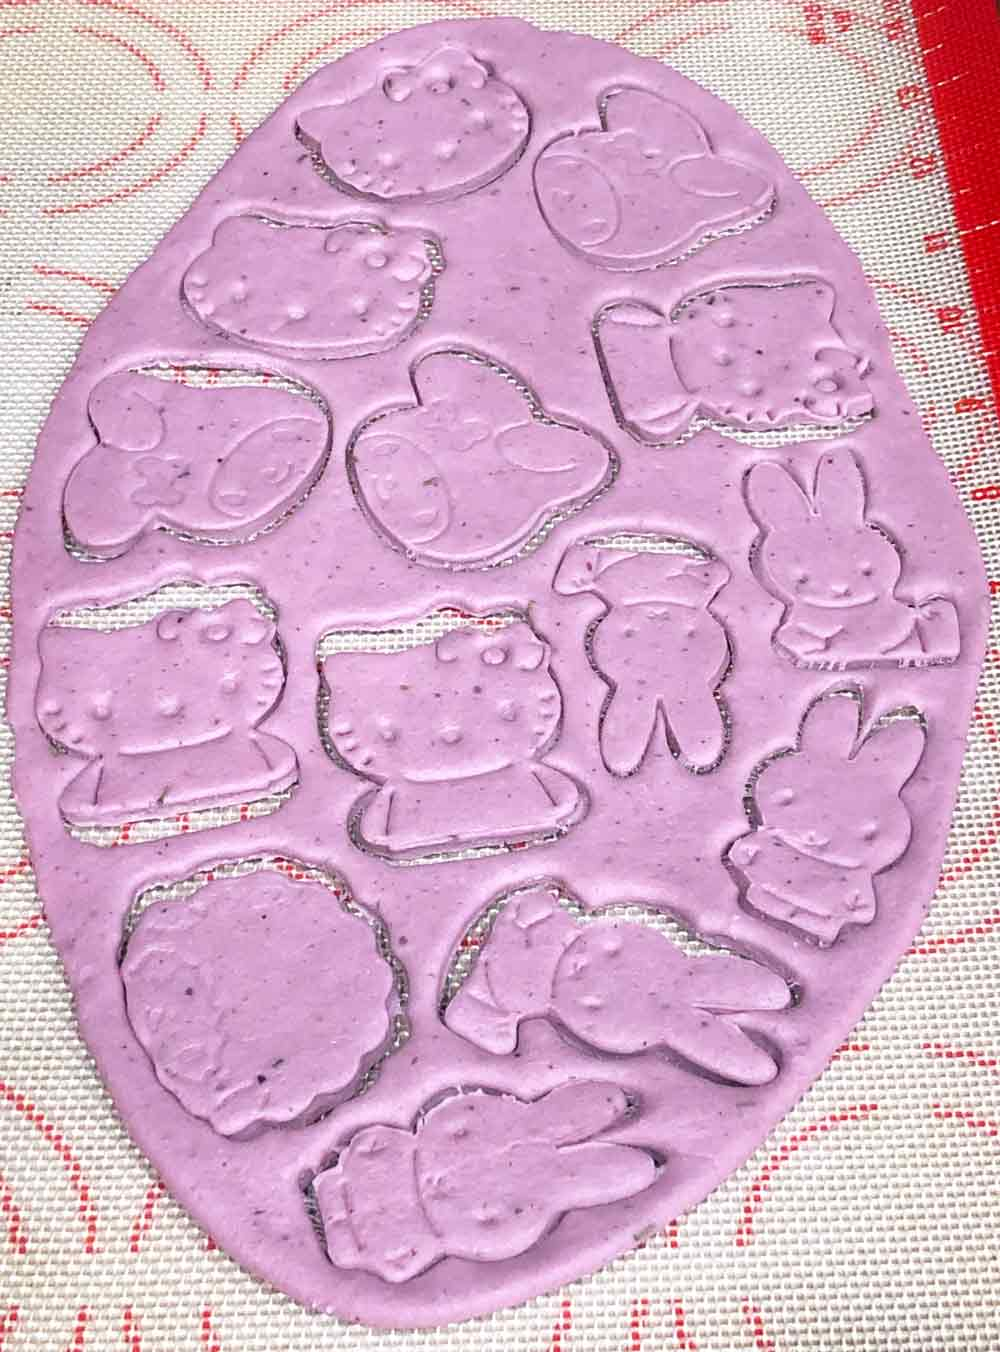 using leftover dough to make hello kitty crackers